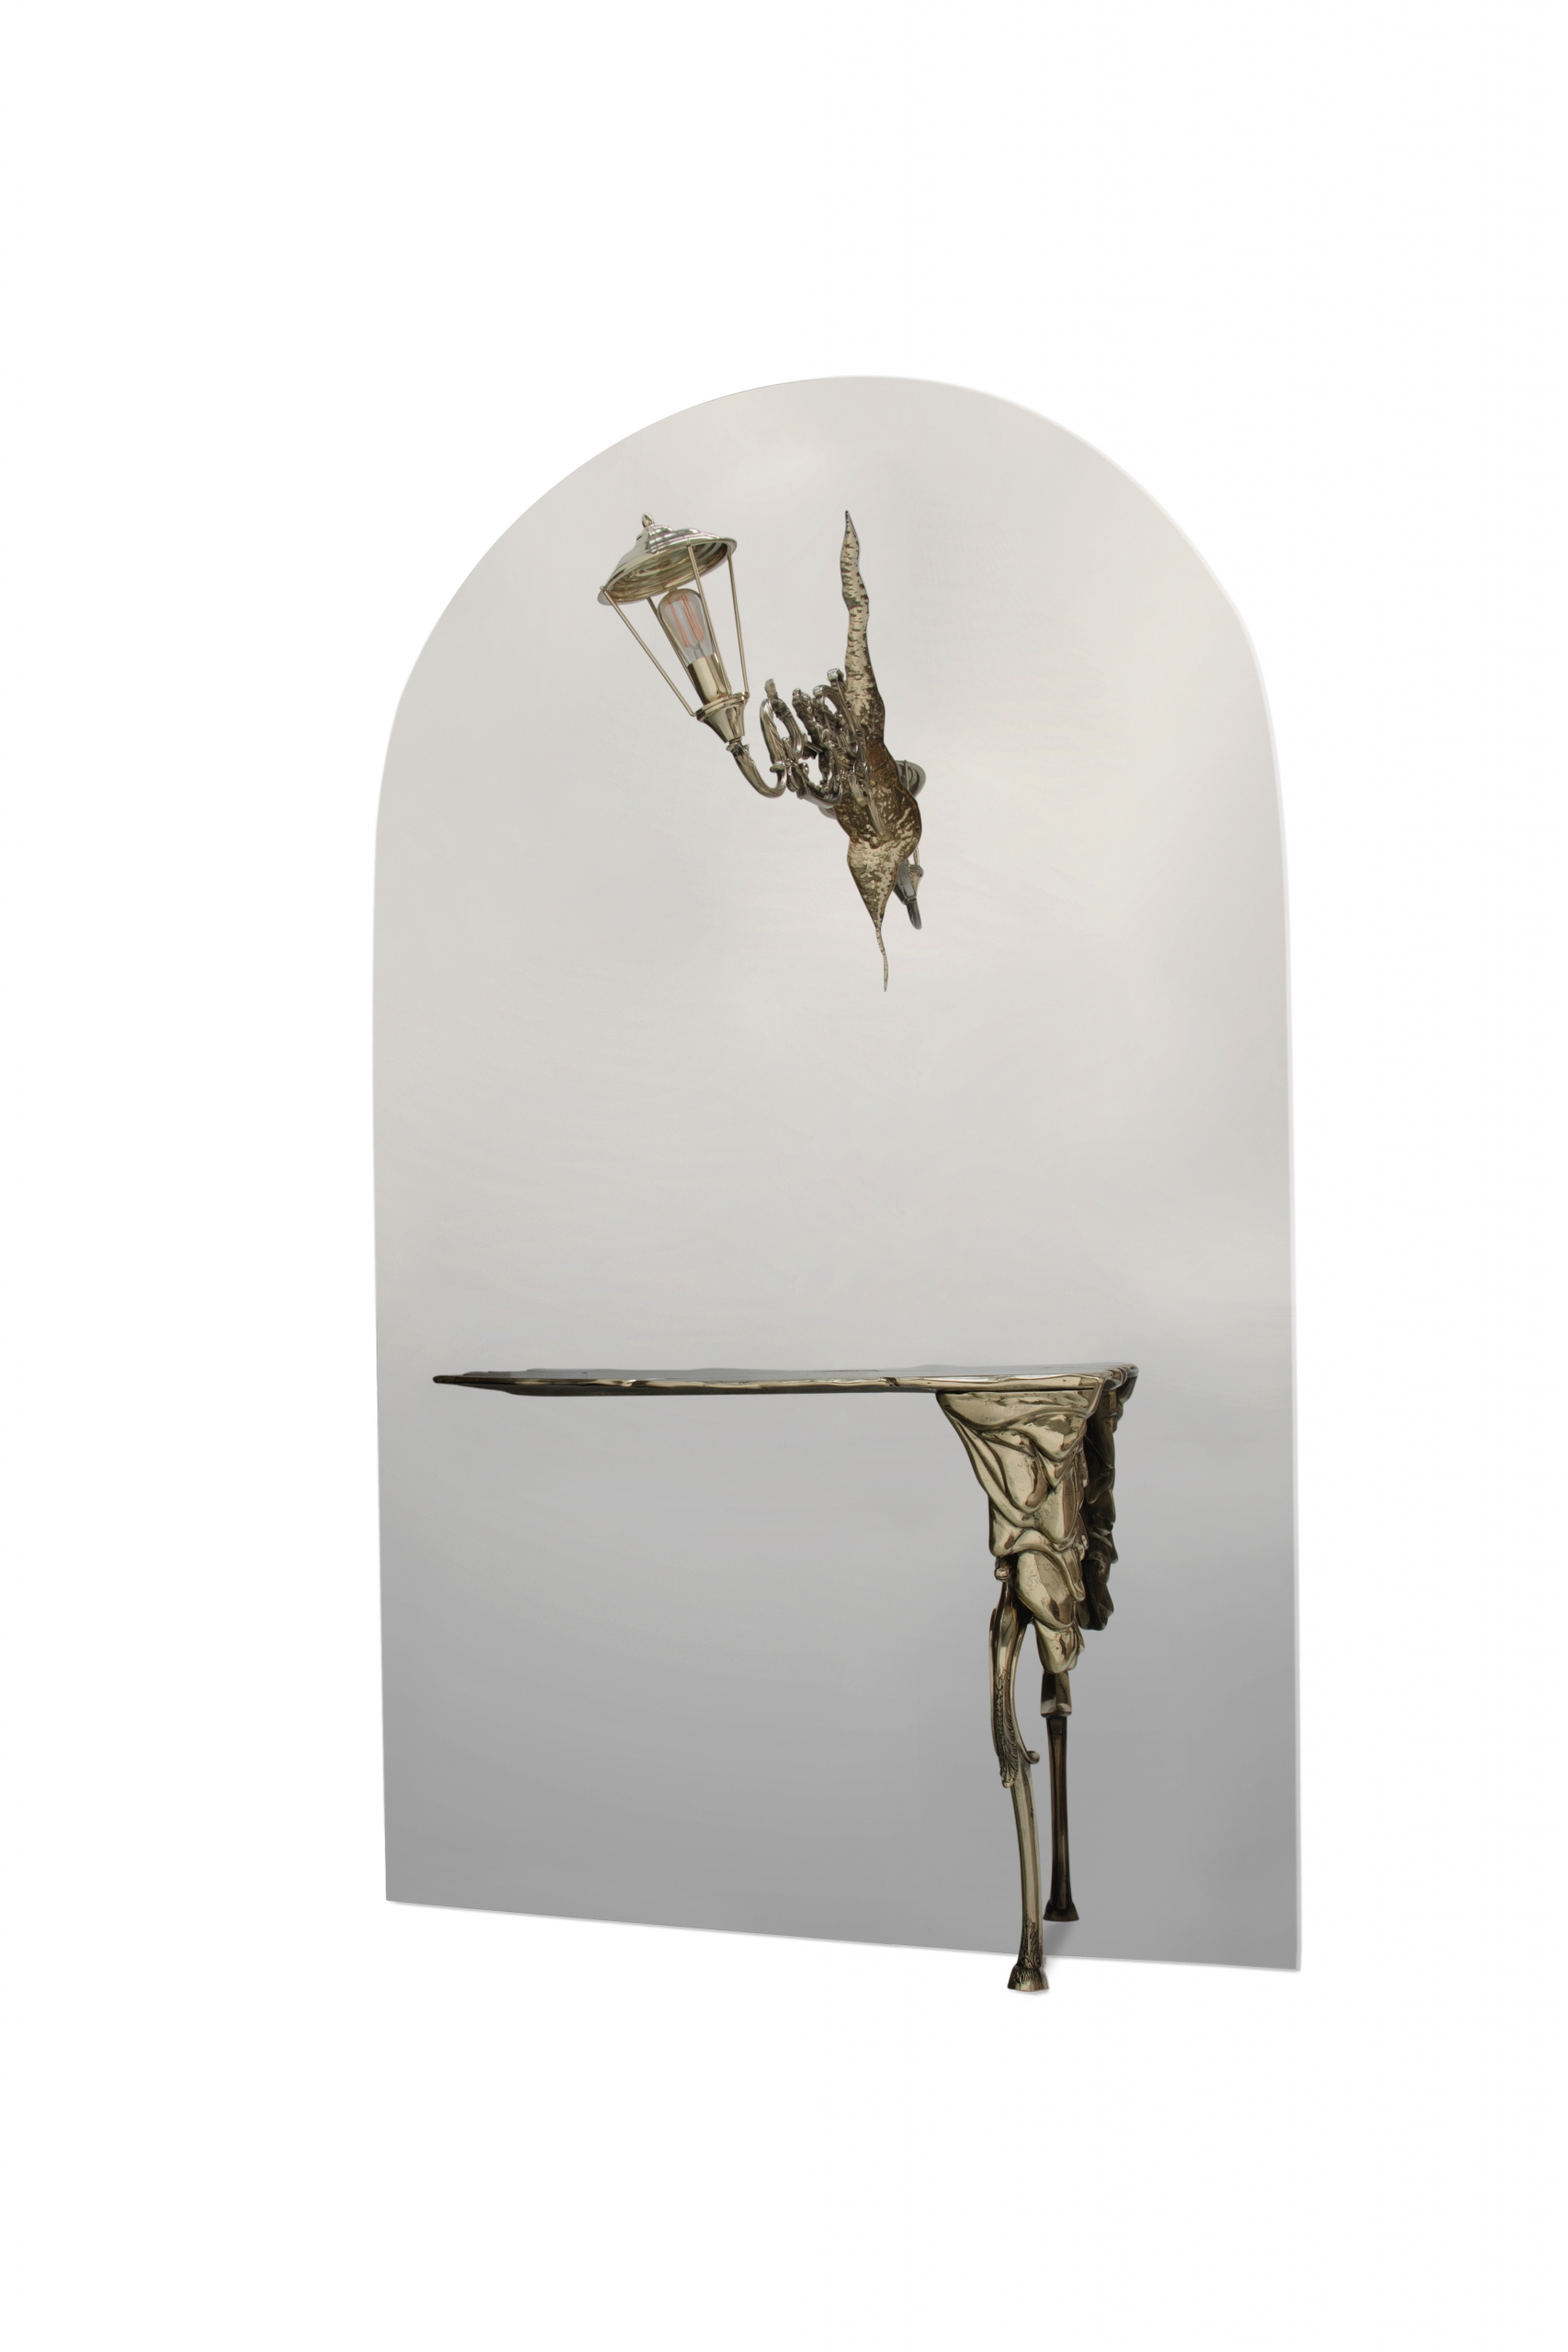 Interior Design Trends For A Luxury Home - LUMIERE CONSOLE   lumiere console 02 scaled